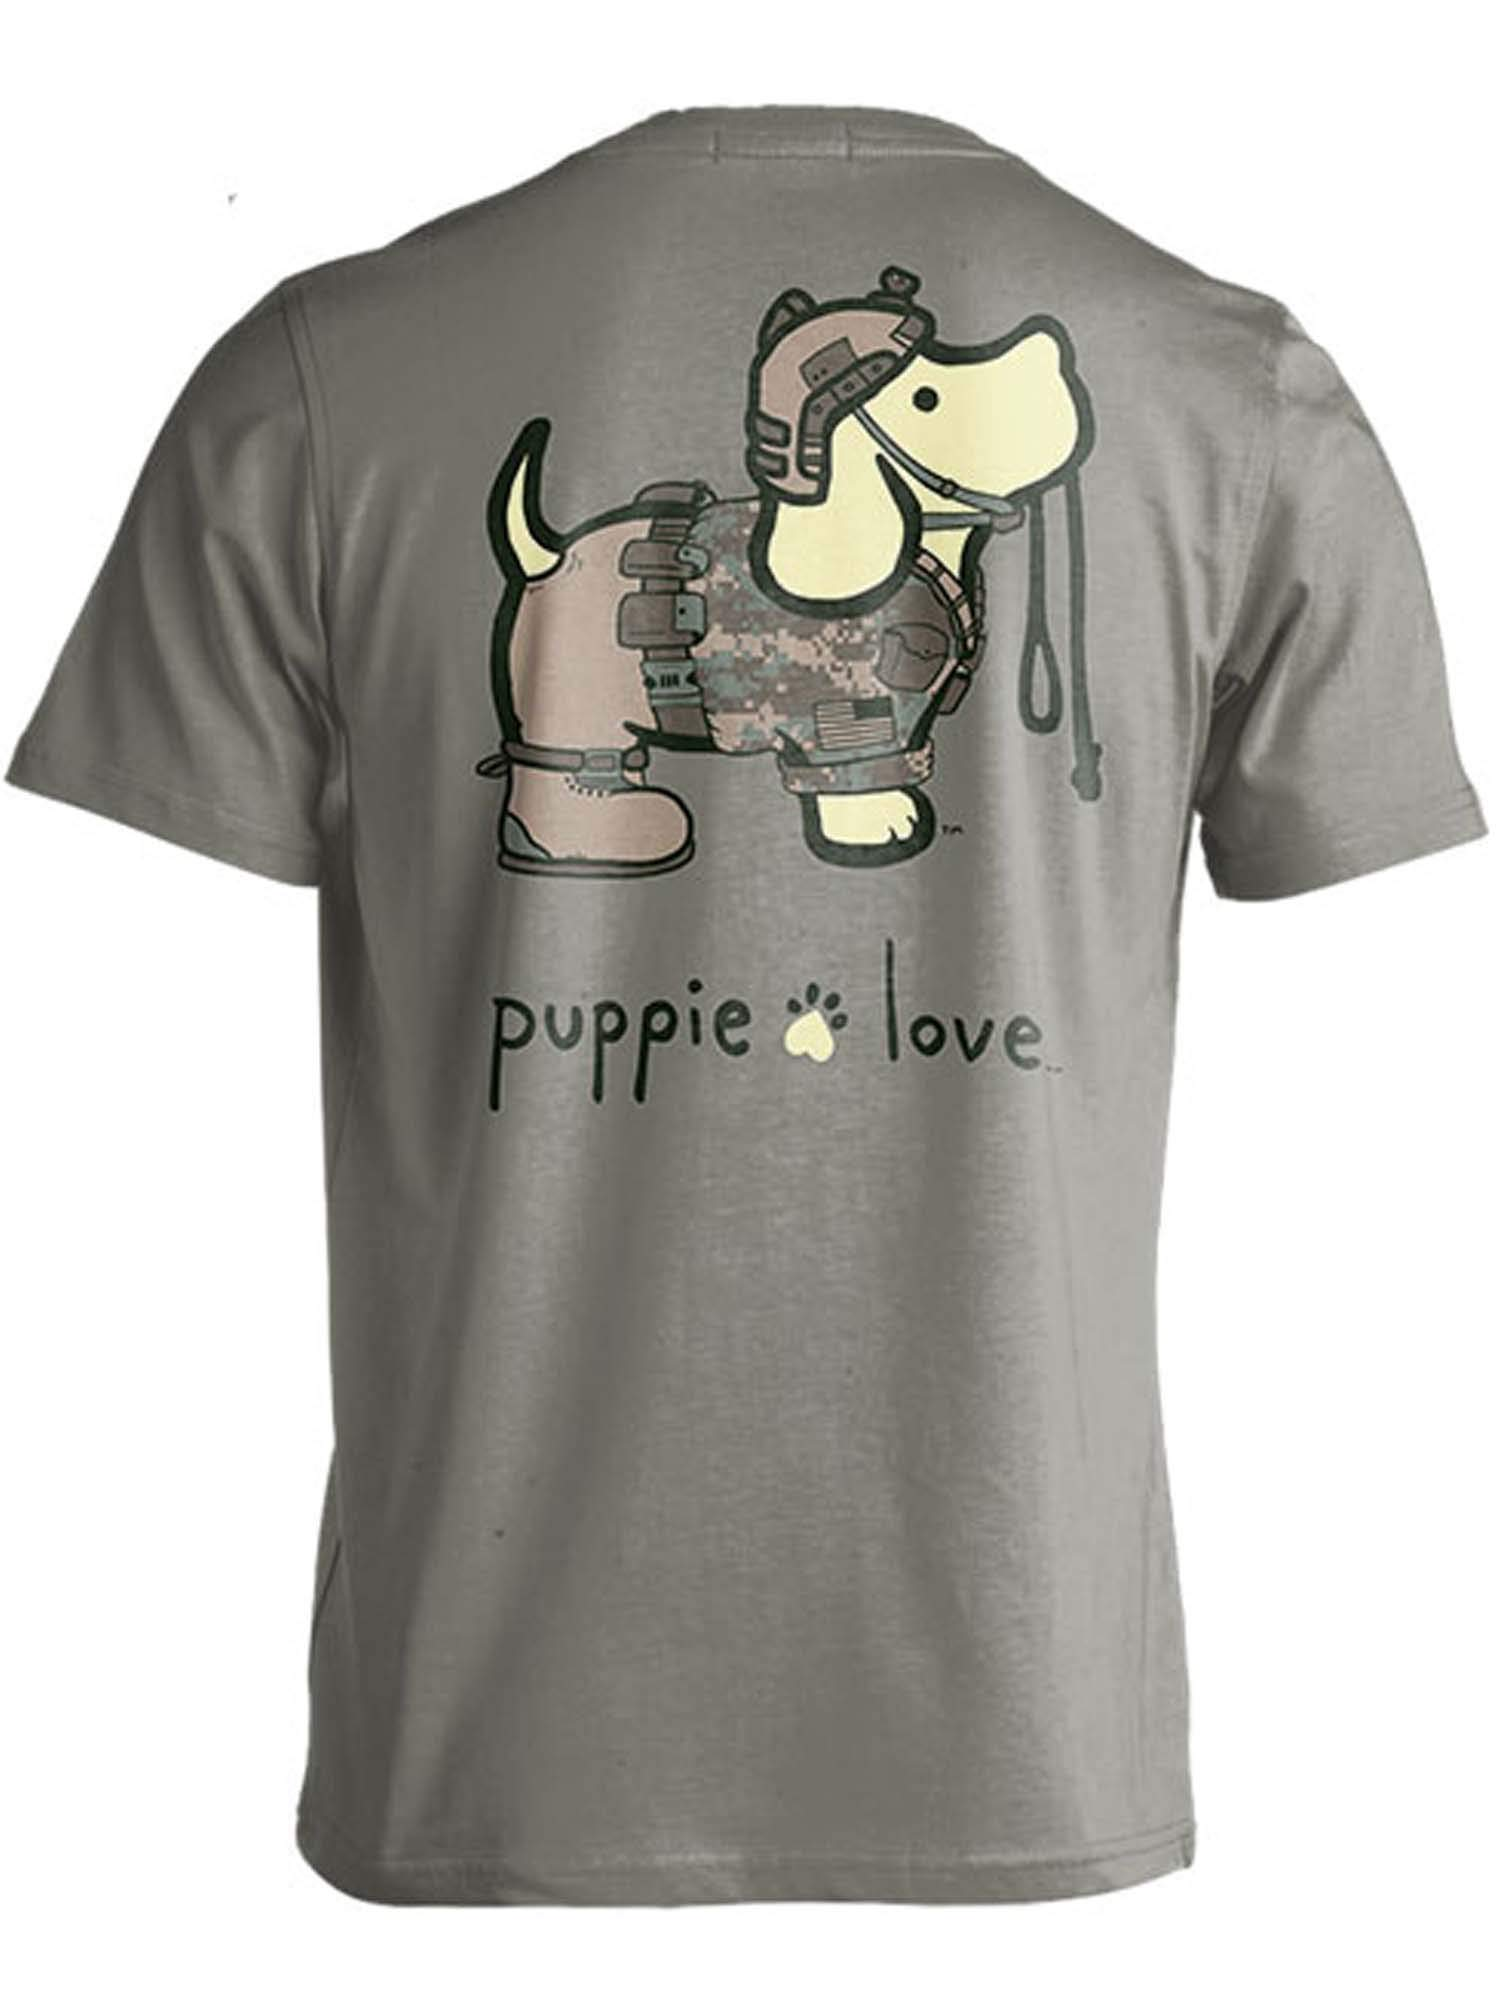 Rescue Dog Adult Unisex Short Sleeve Cotton T-Shirt, Army Pup (Medium, Heather Military Green)